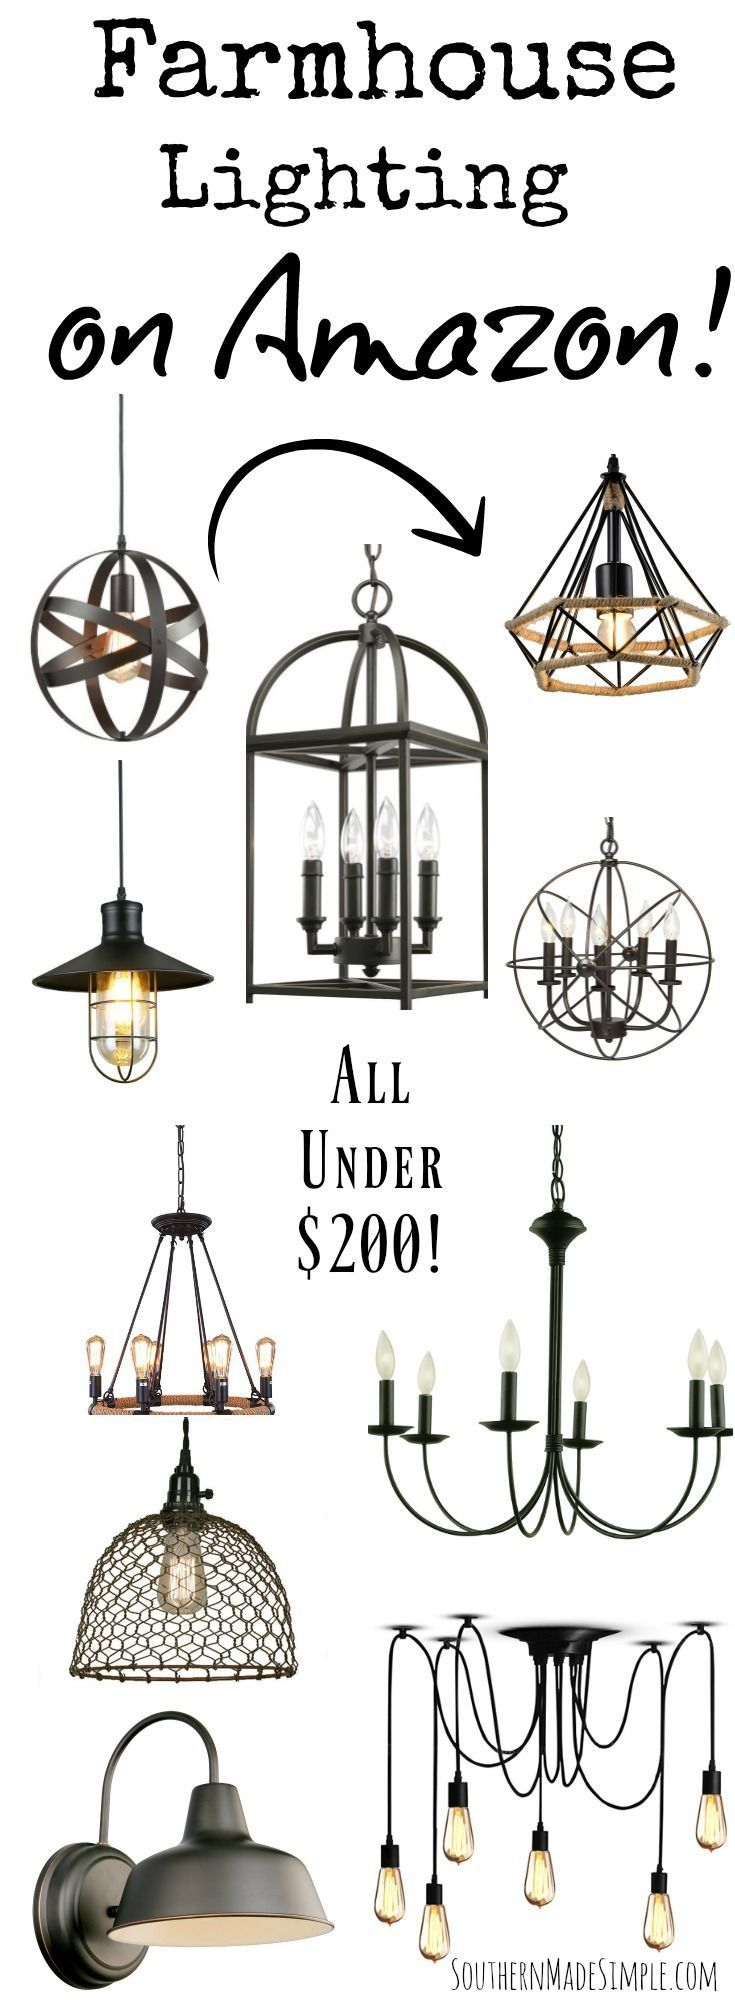 farmhouse lighting ideas. farmhouse light fixtures under 200 on amazon lighting ideas